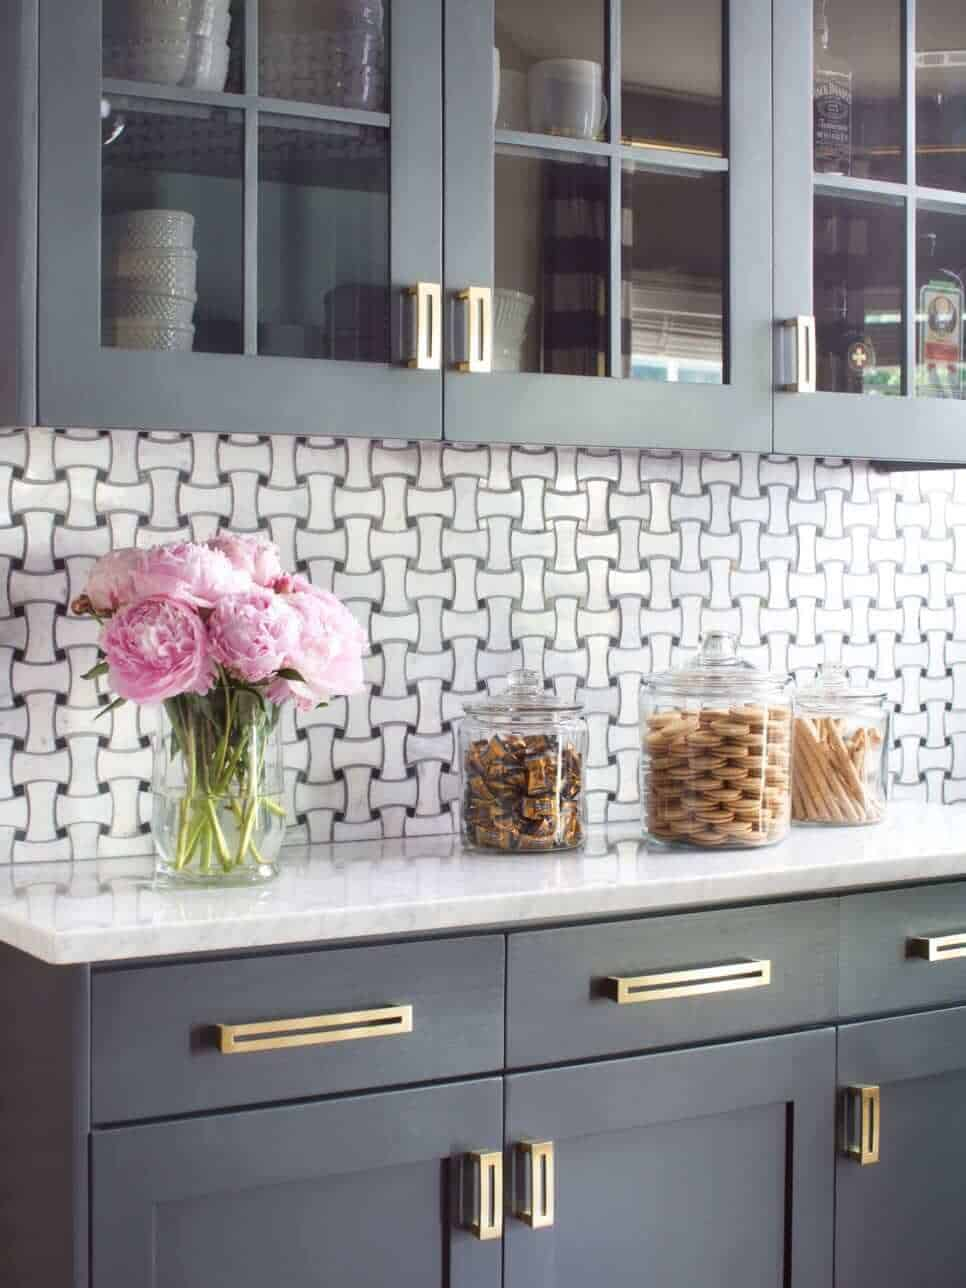 8 Ways To Upgrade Your Ugly, Boring Cabinets Ideas For Ugly Kitchen Cabinets on ideas for ugly walls, ideas for ugly fireplaces, ideas for ugly fences, ideas for ugly bookshelves,